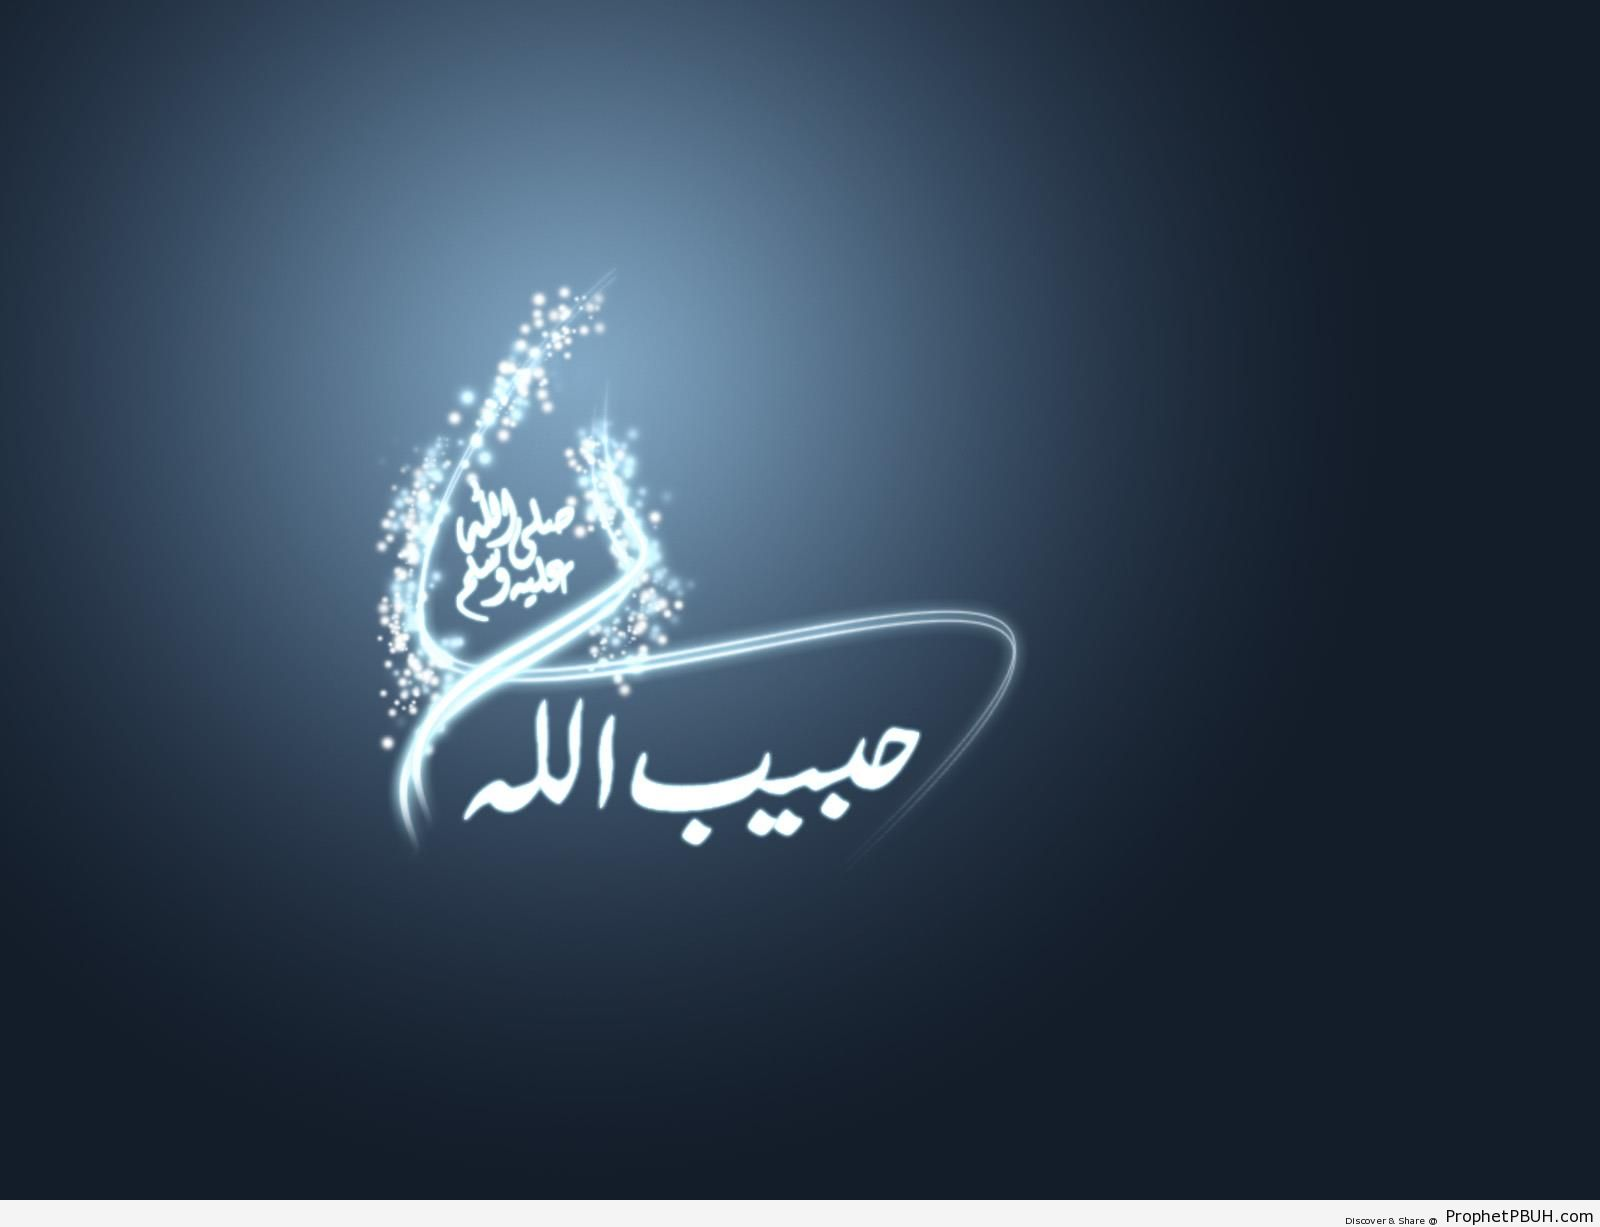 Peace and Blessings Be Upon Him (Wallpaper) - Islamic 1600 x 1200 Wallpapers -